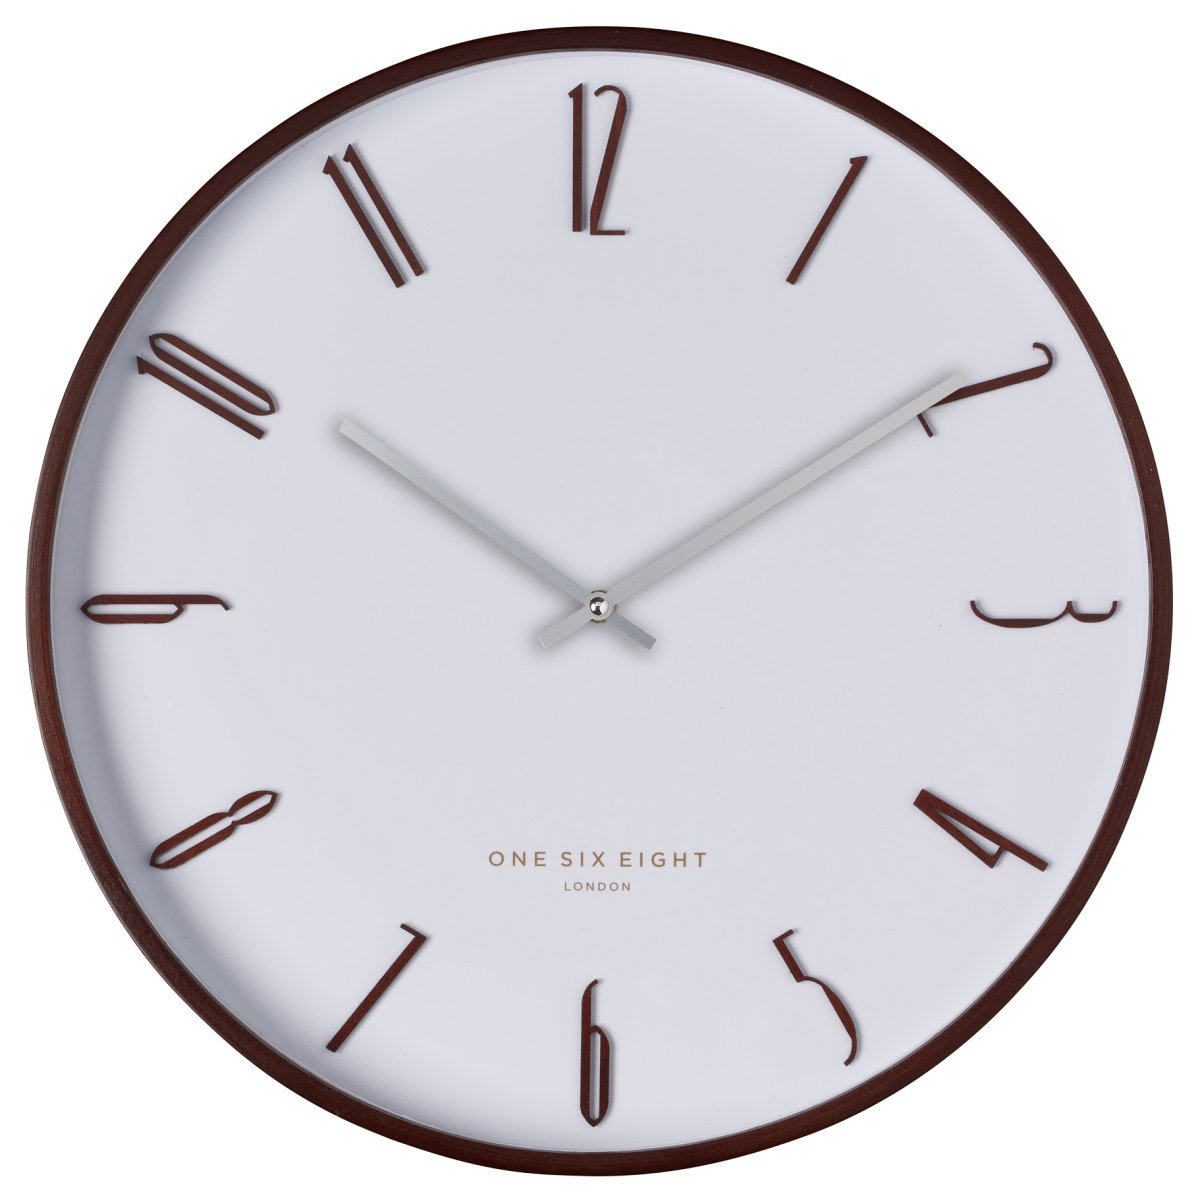 One Six Eight London Archie Wooden Wall Clock White 41cm 24002 1